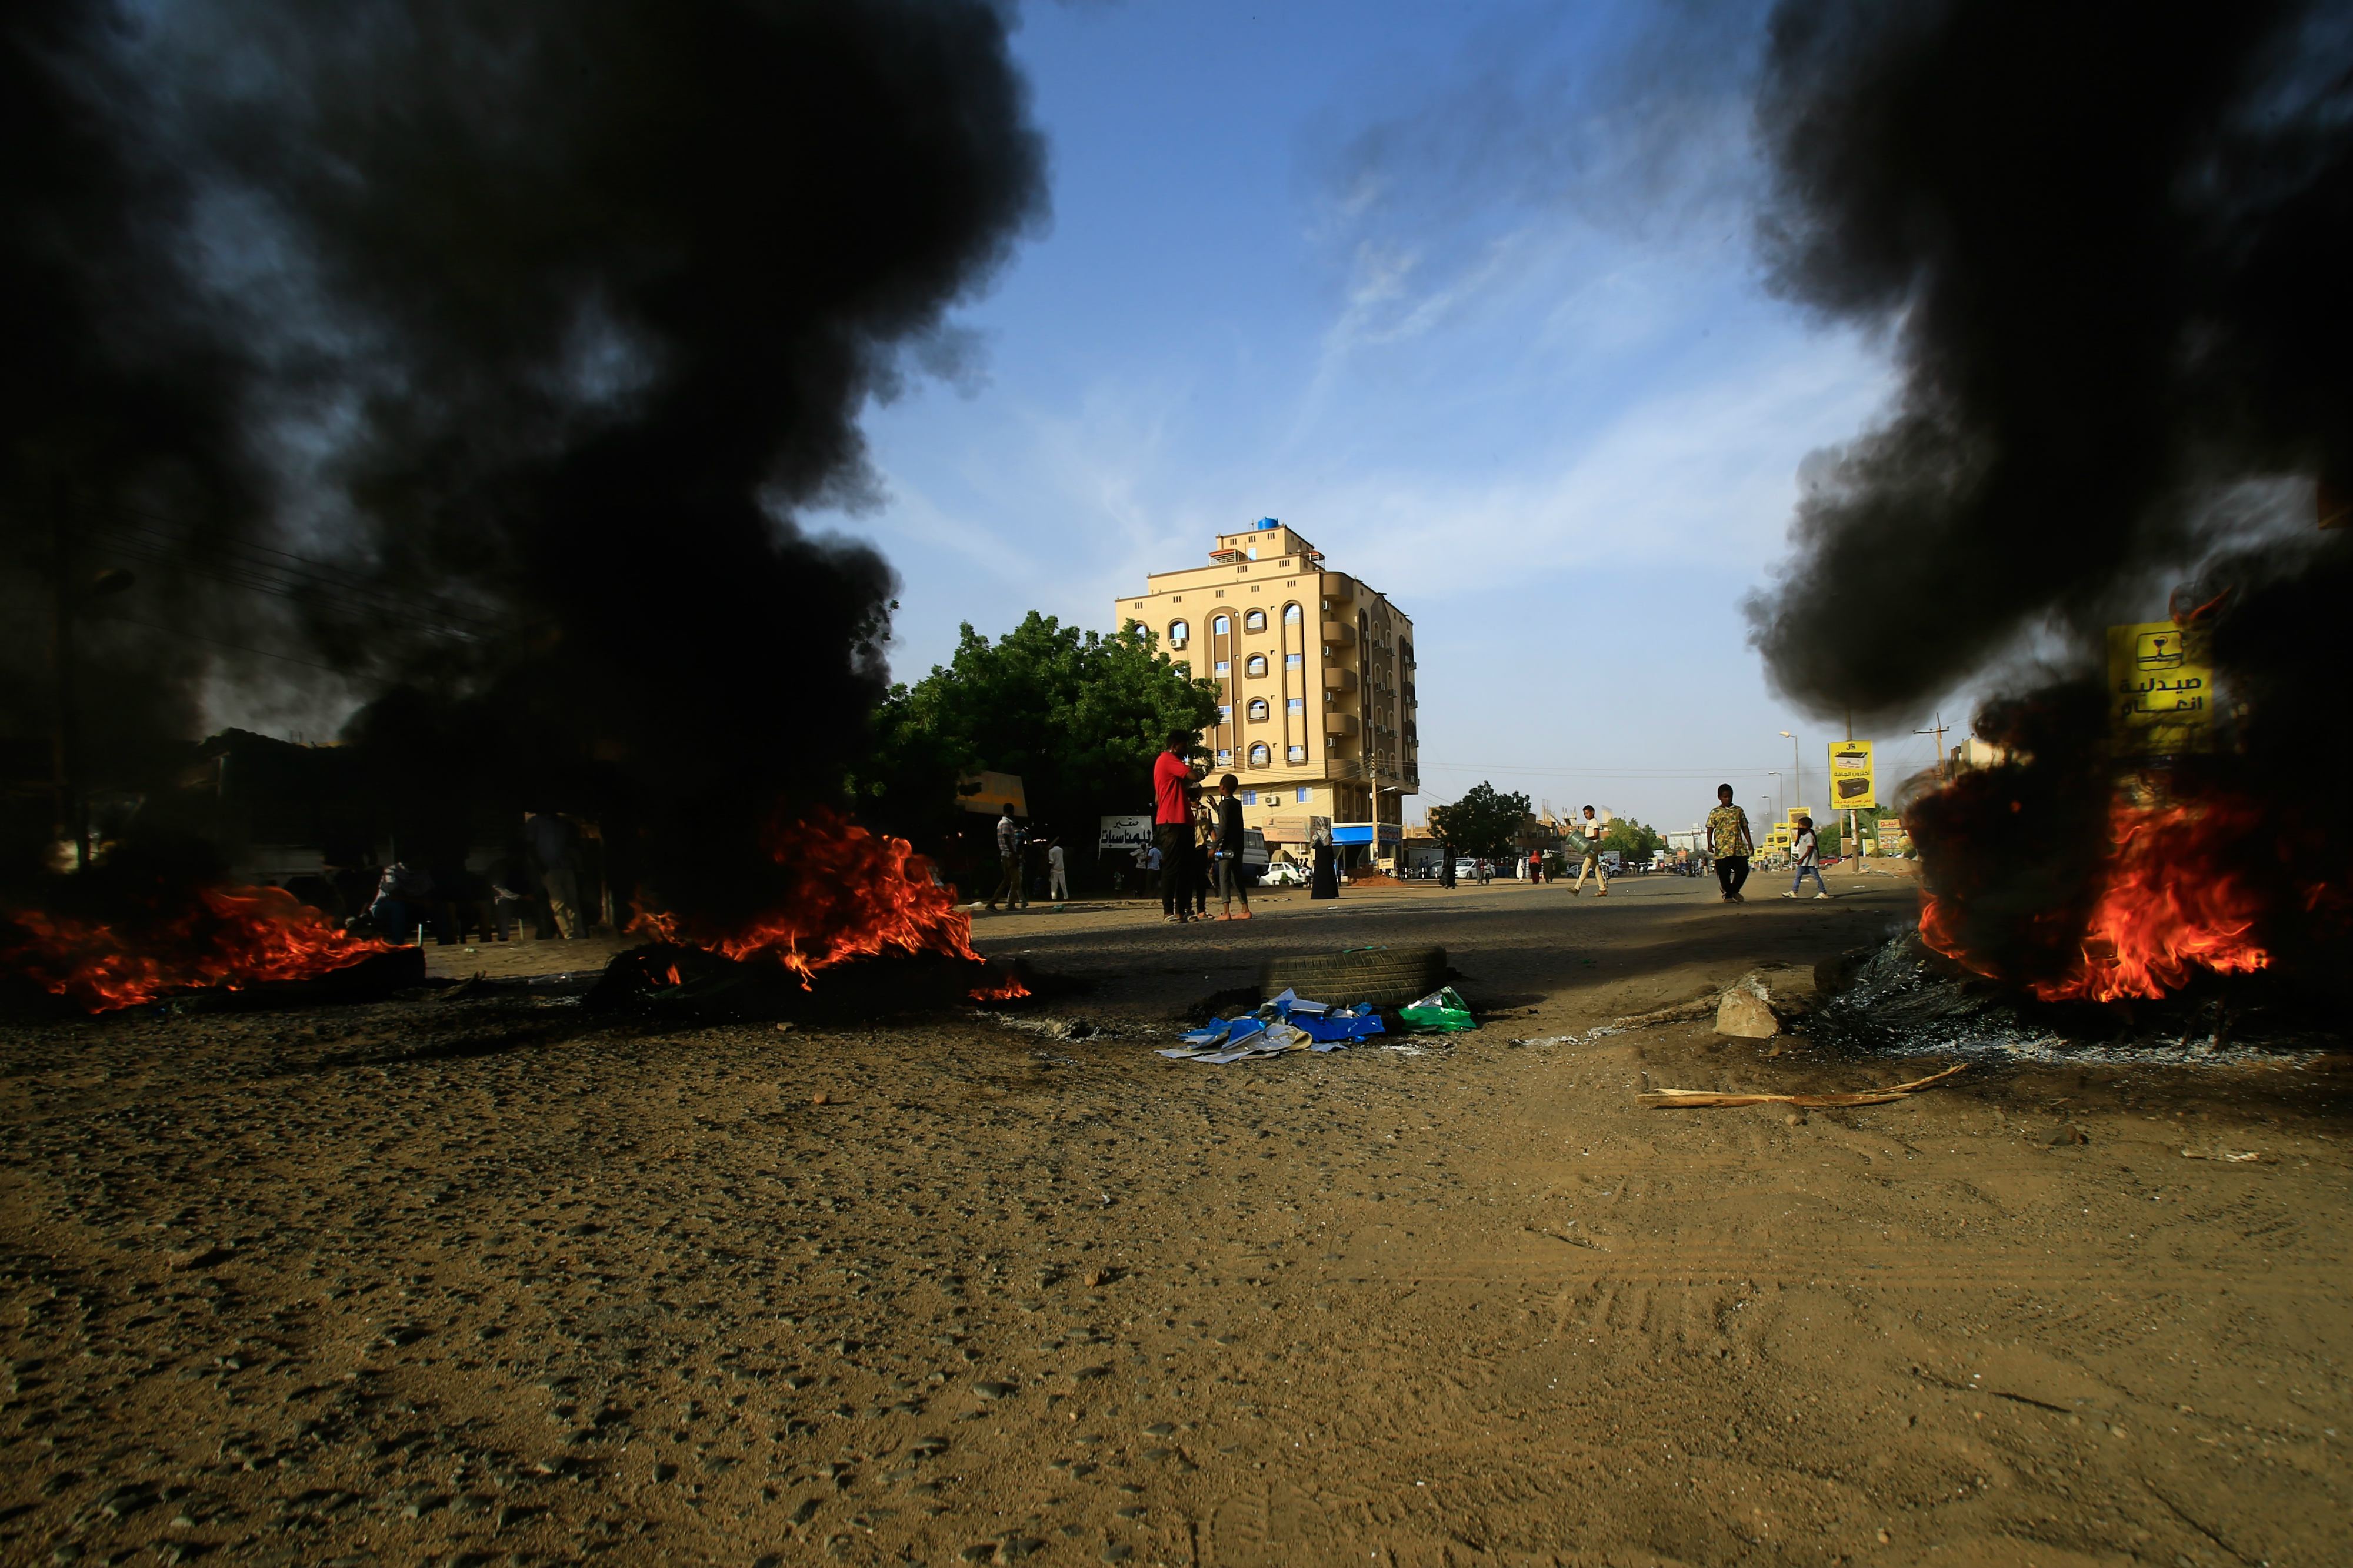 Demonstrators burn tires in the middle of a main street in Khartoum as they protest against the results of the probe into the June raid on a Khartoum protest camp (AFP)